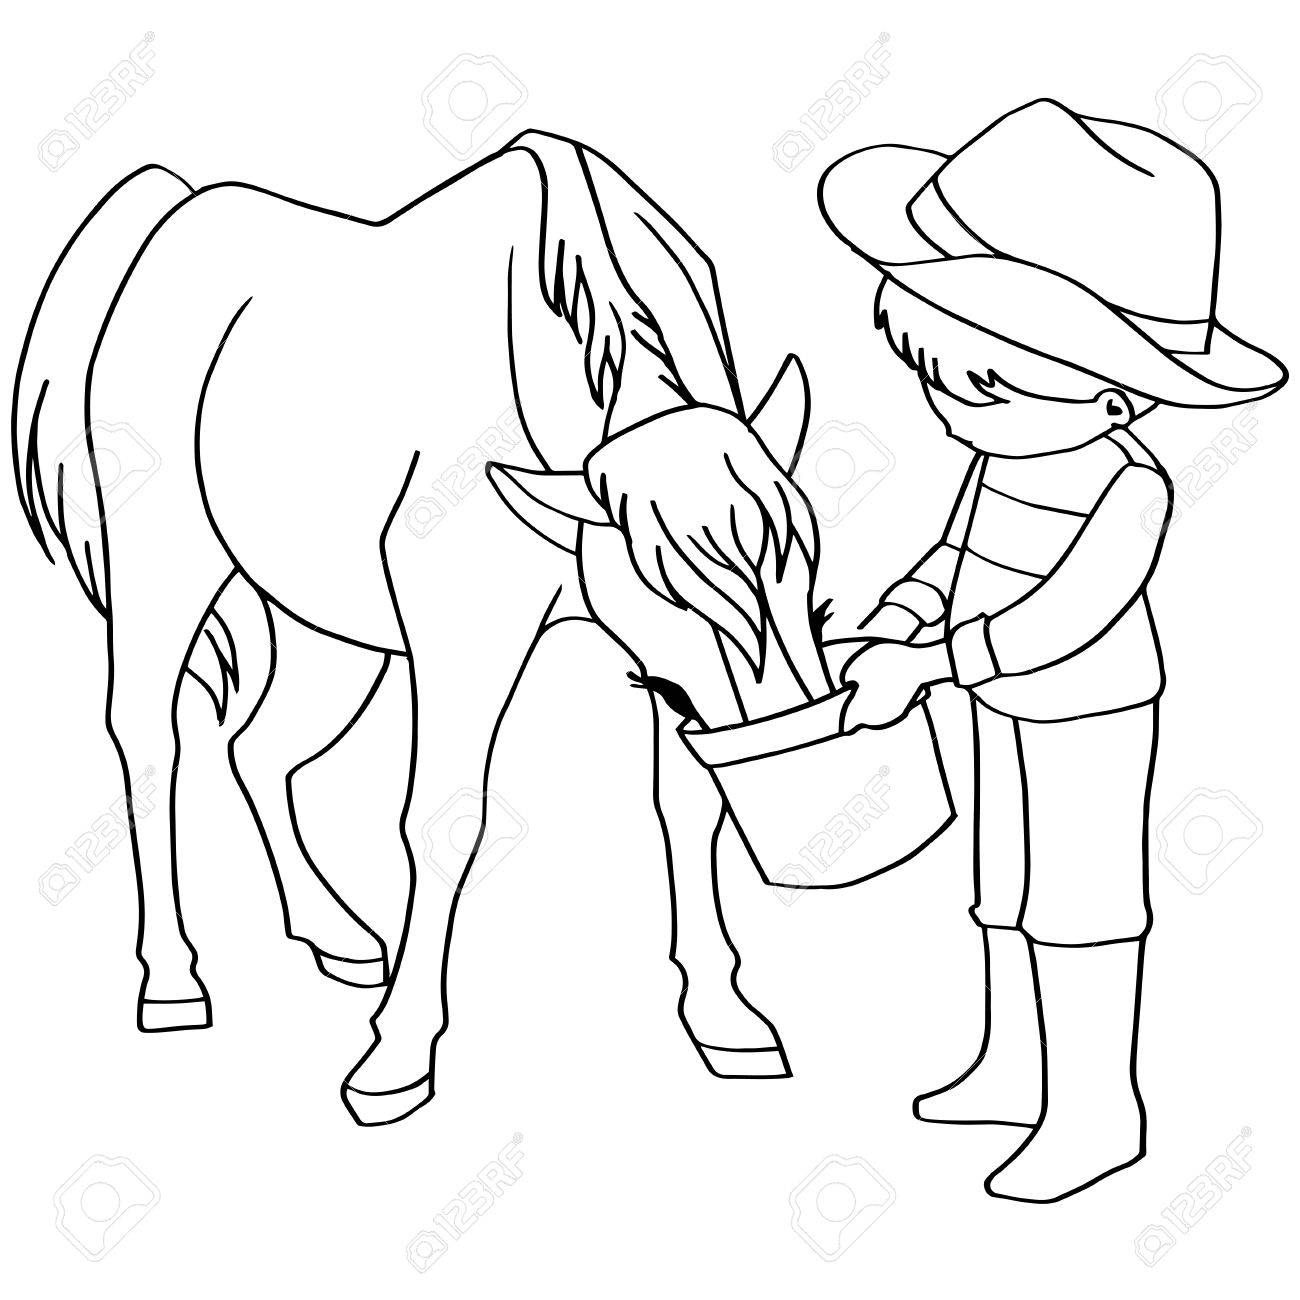 Coloring Book Child Feeding Horse Vector Stock